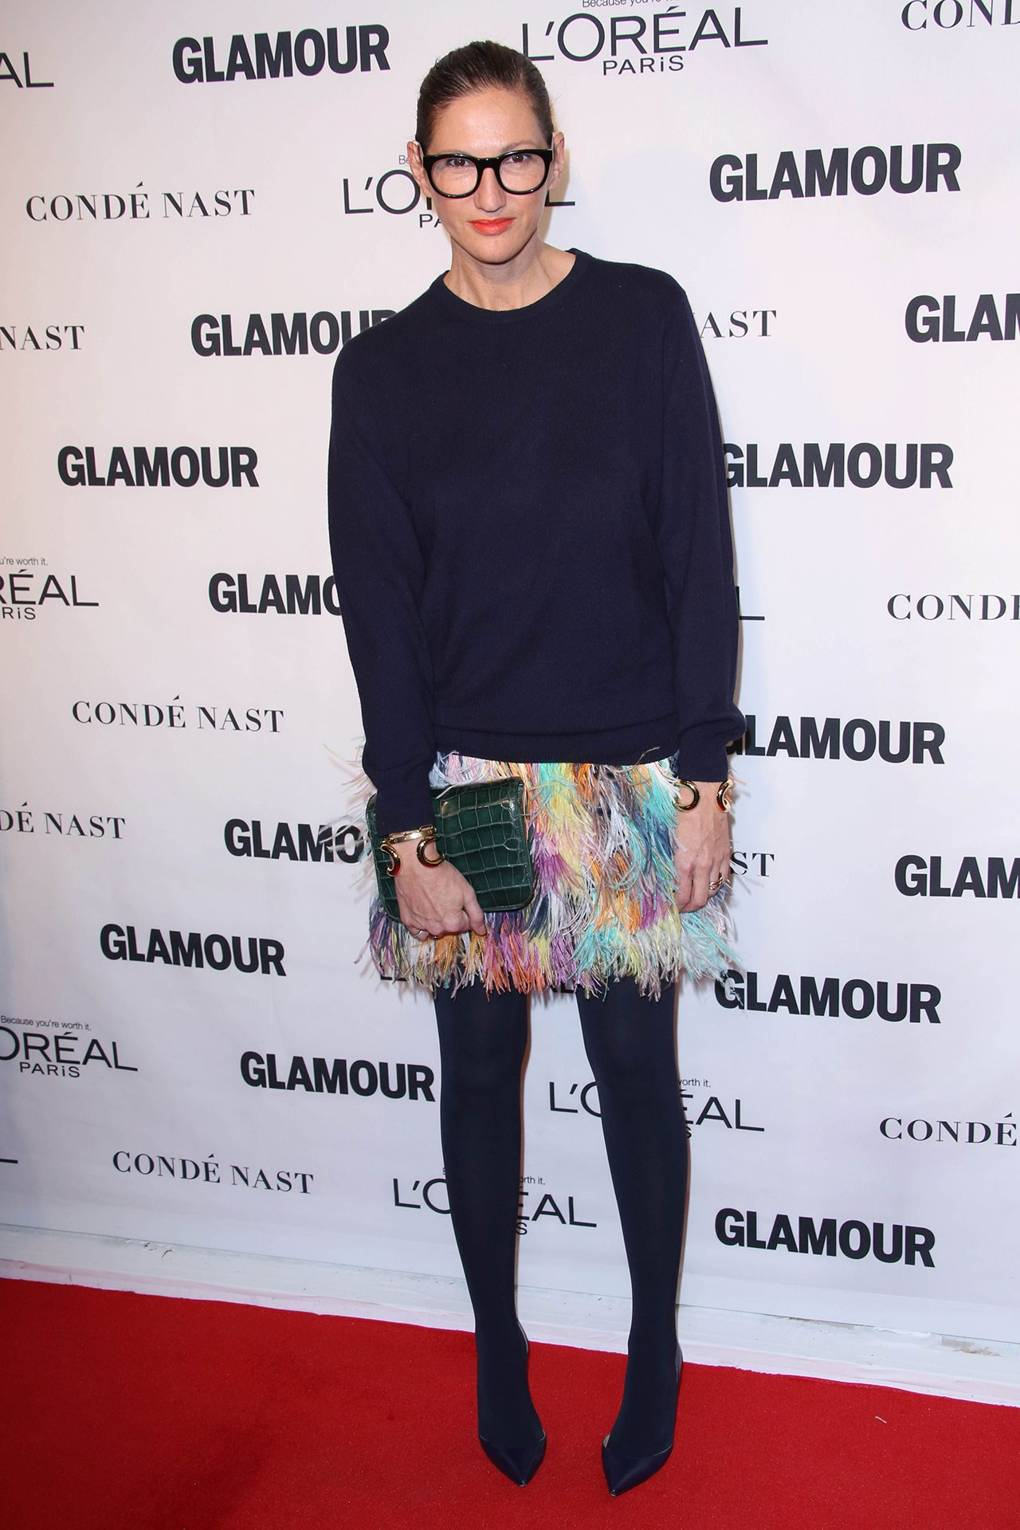 8eb89a1841548b Jenna Lyons J Crew Style and Fashion Pictures | Glamour UK